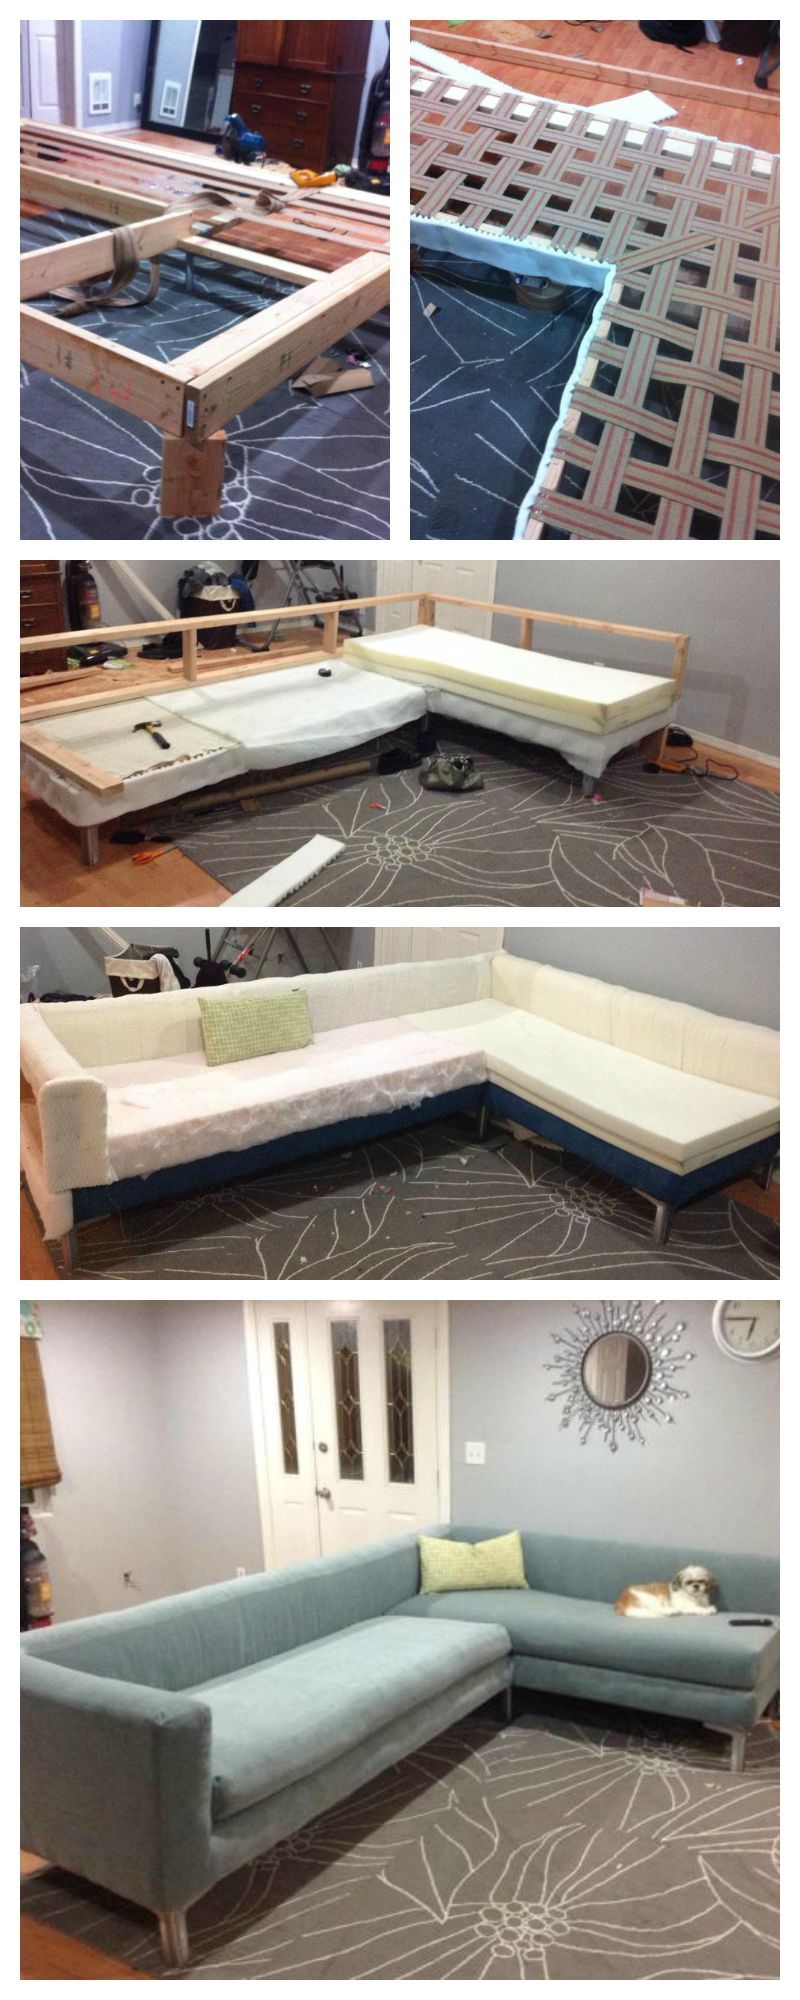 build living room furniture decorating ideas for apartment your own sofa or couch easy diy 2x4 frame modern style blue pretty sectional how to tutorial upholster cushion ana white com